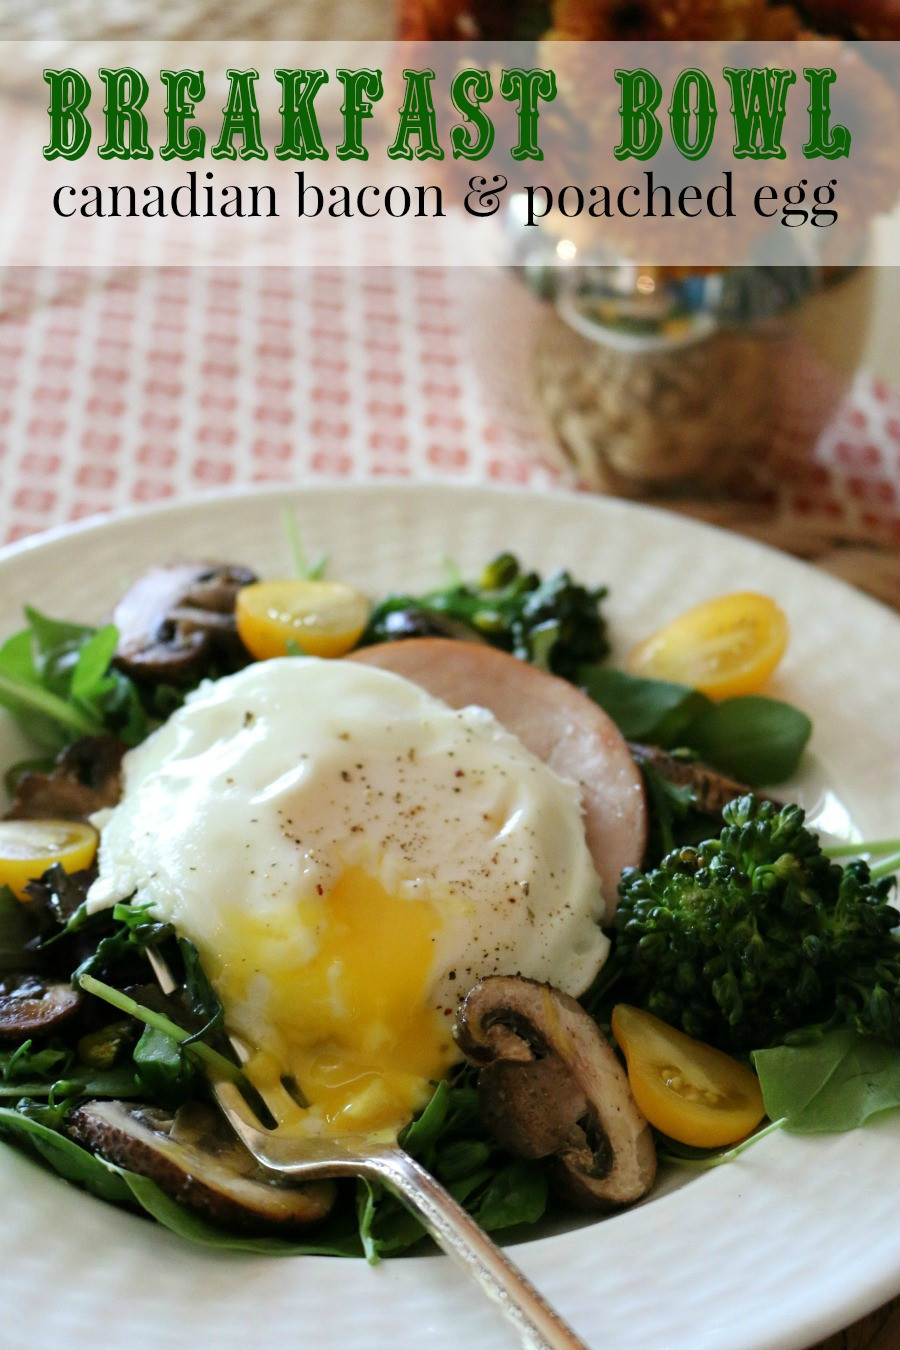 Healthy Breakfast Bowls With Eggs  Breakfast Bowl Canadian Bacon and Steamed Egg